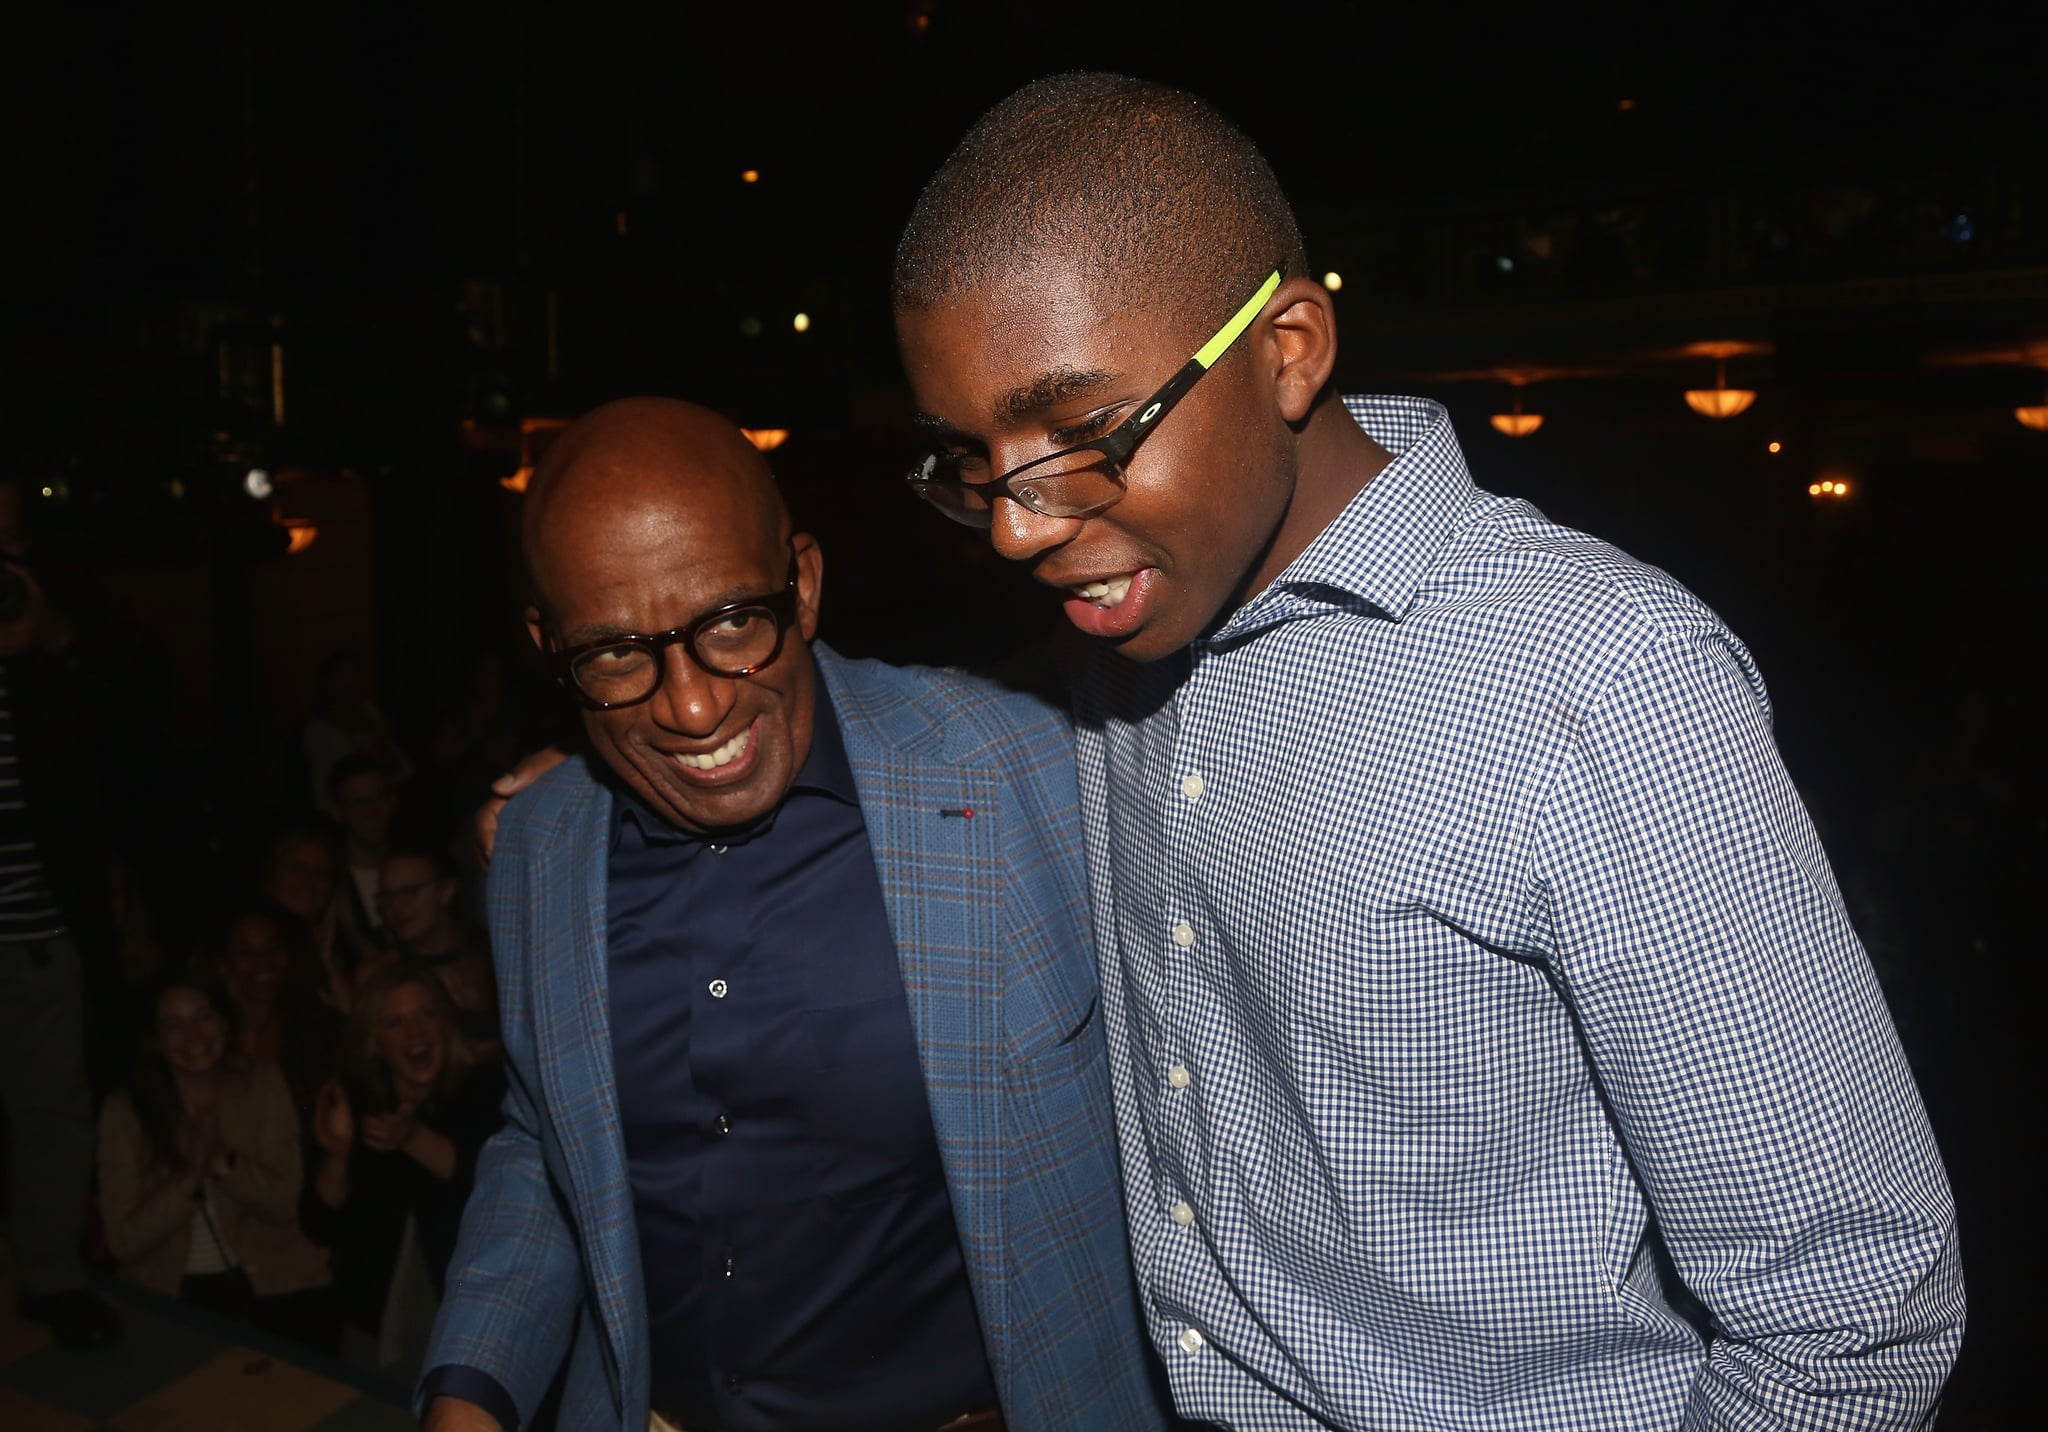 NEW YORK, NY - OCTOBER 05: Al Roker and son Nicholas Roker backstage after Roker made his Broadway debut in the hit musical